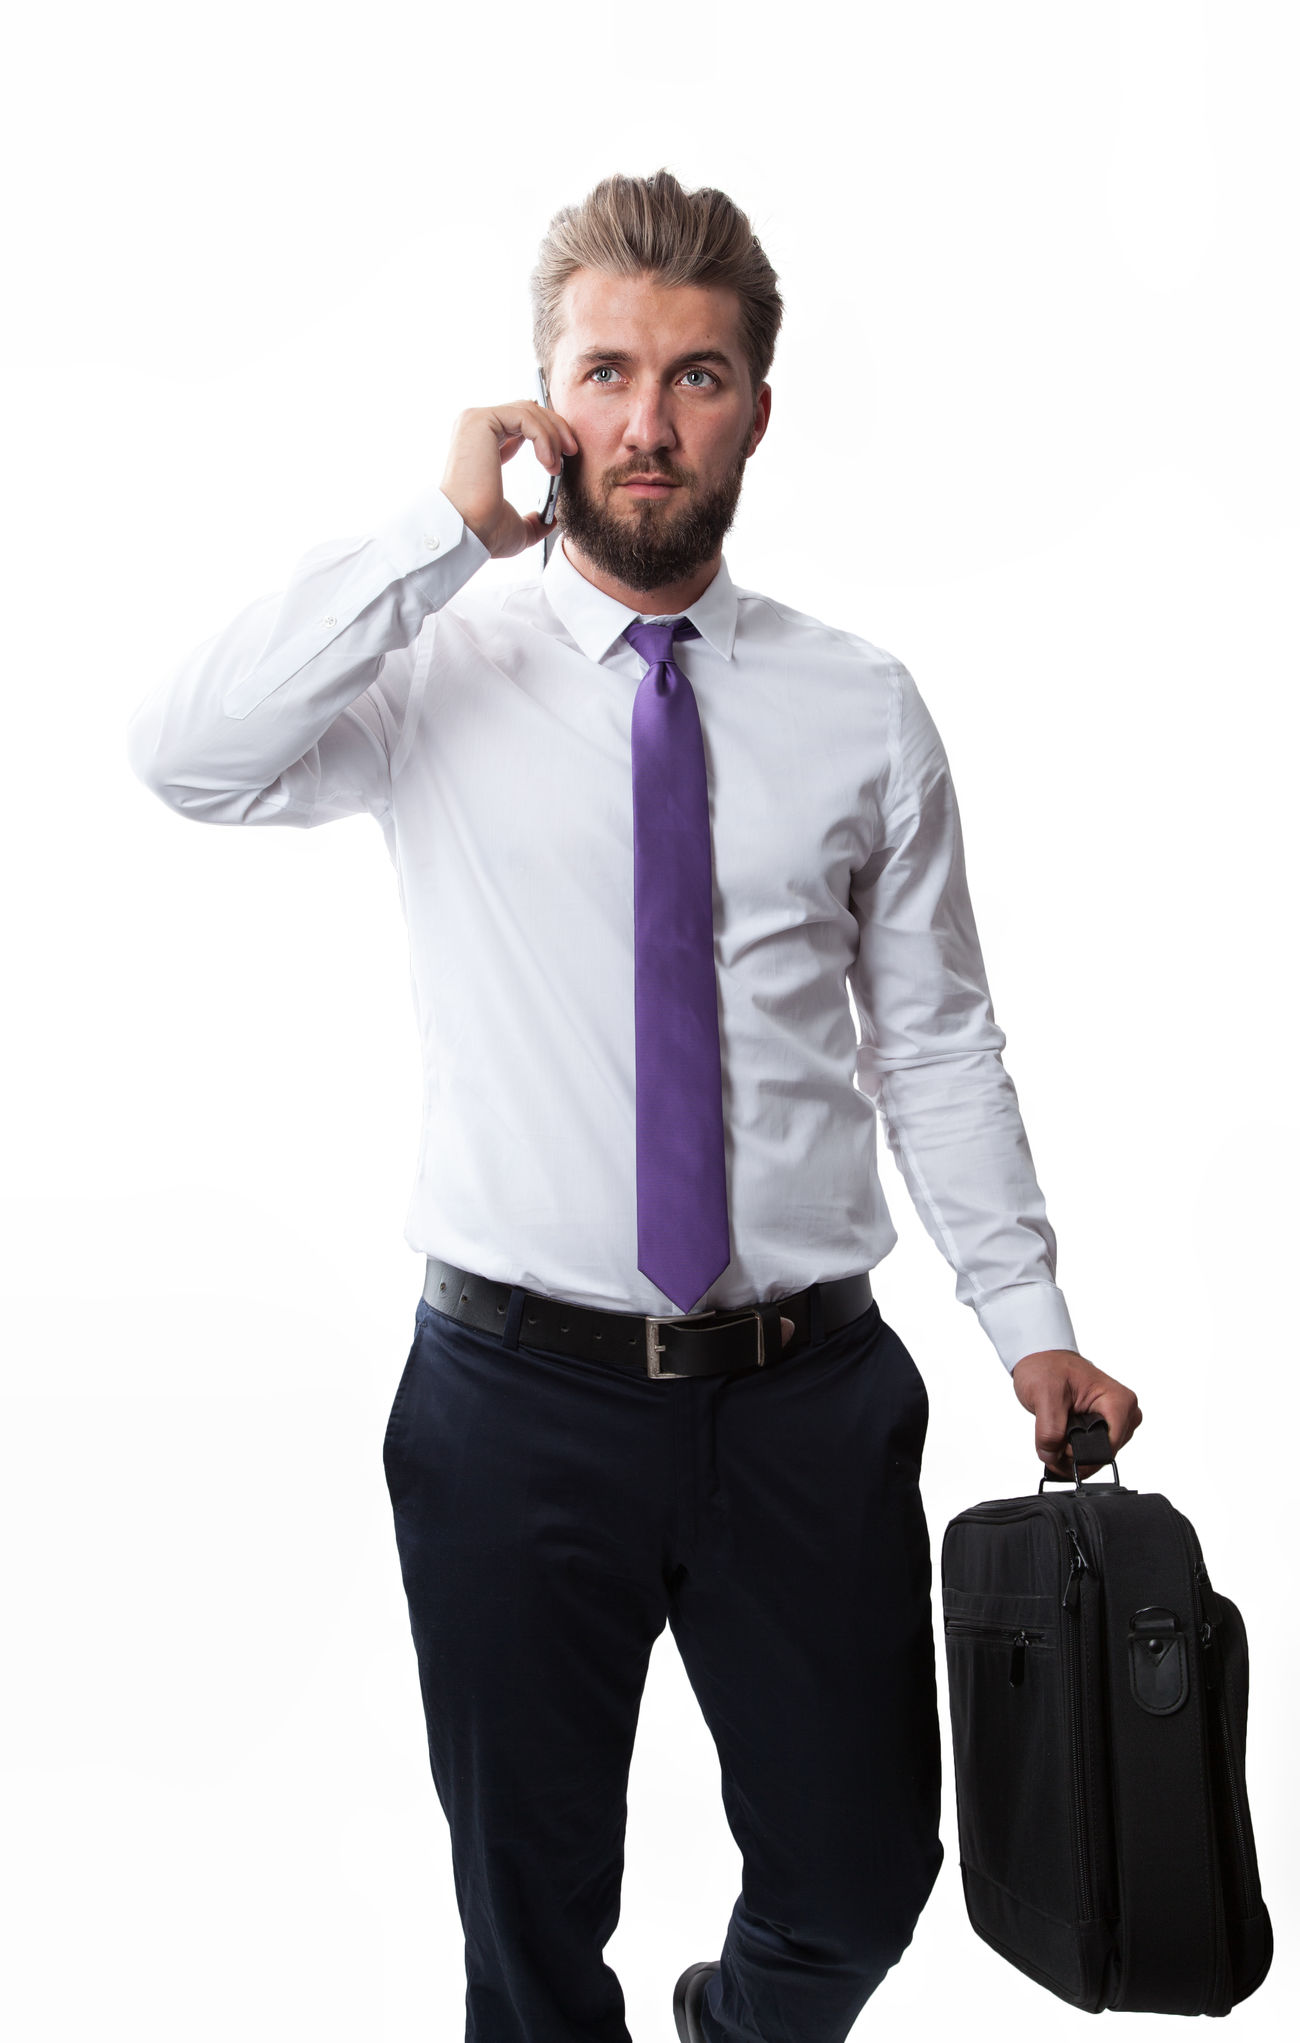 Attractive businessman with a beard is walking and talking on a smart phone Attractive Background Beard Businessman Call Cellphone Fashion Forward Full Length Handbag  Handsome Holding Isolated Model One People Person Smartphone Studio Successful Suit Talking Walk White Worker